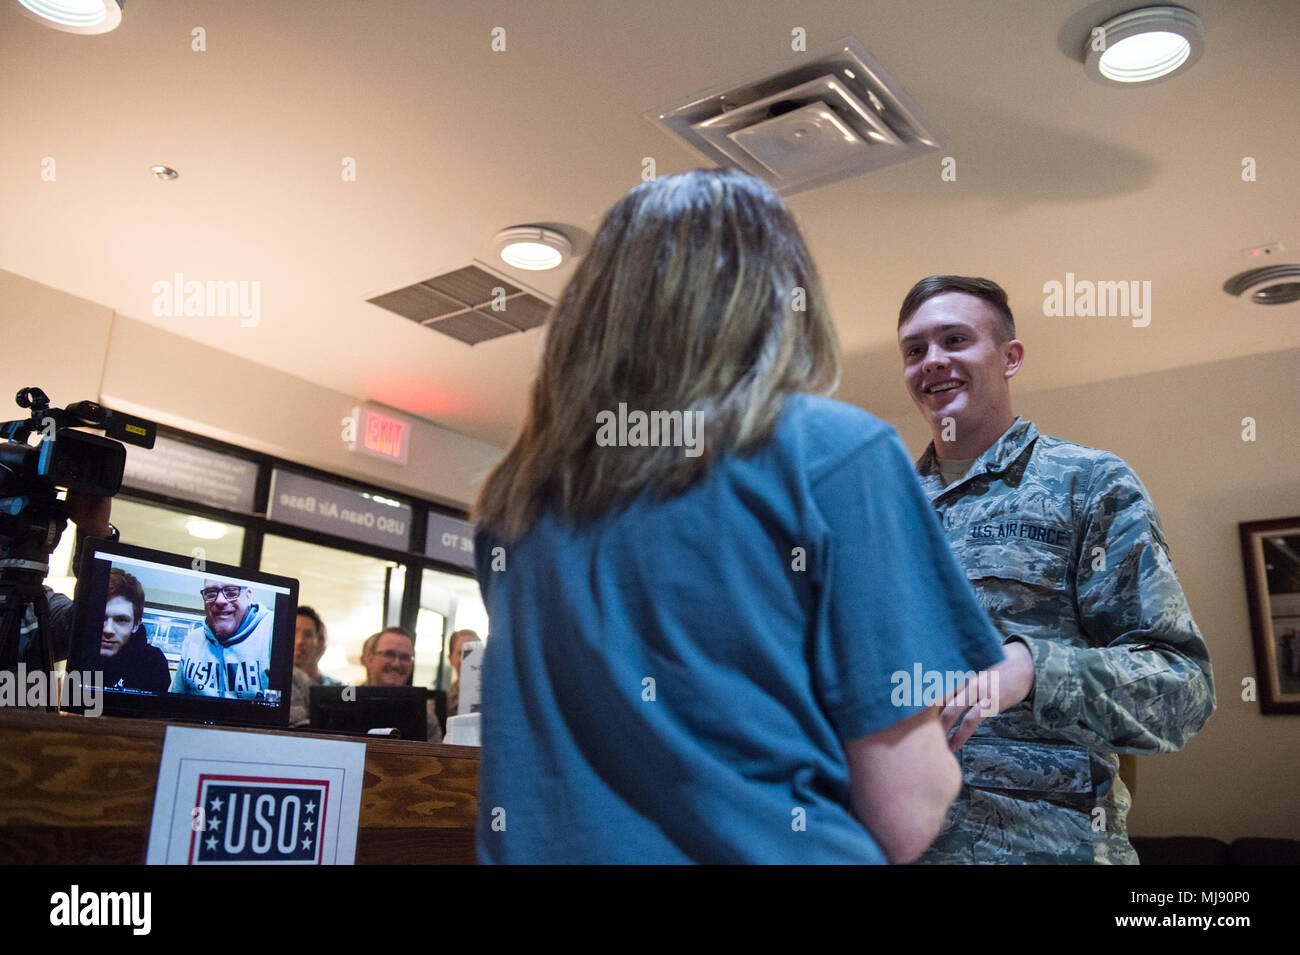 His Mother Surprises Him By Coming Out During A Uso Operation